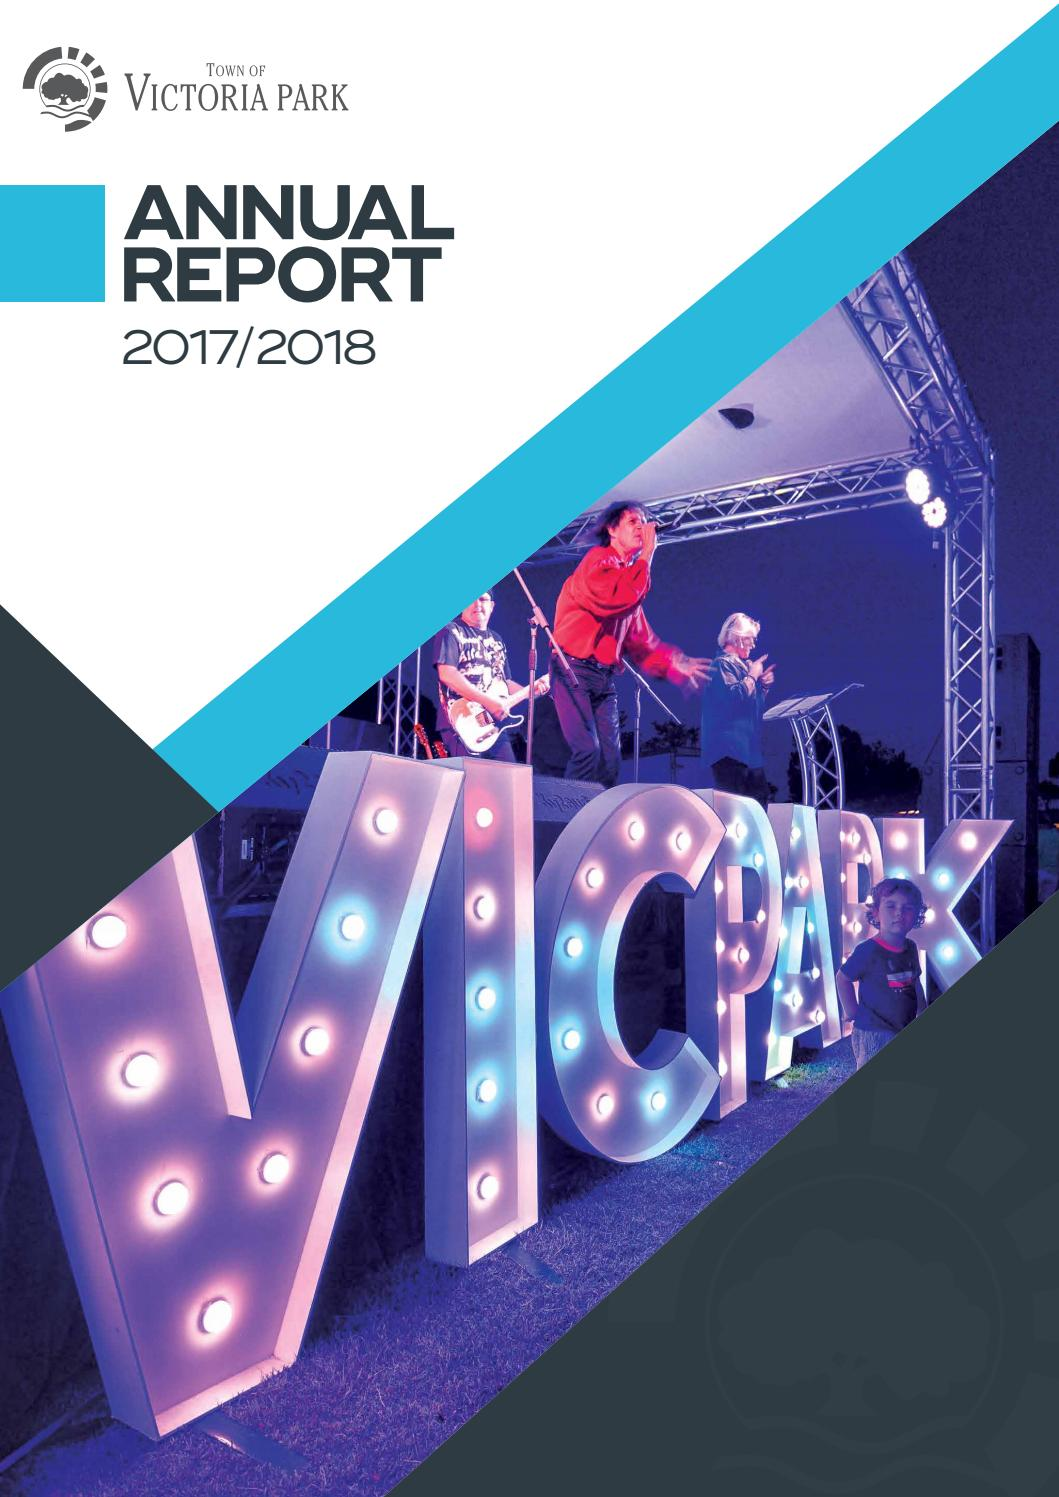 Annual Report 2017-18 by Town of Victoria Park - issuu